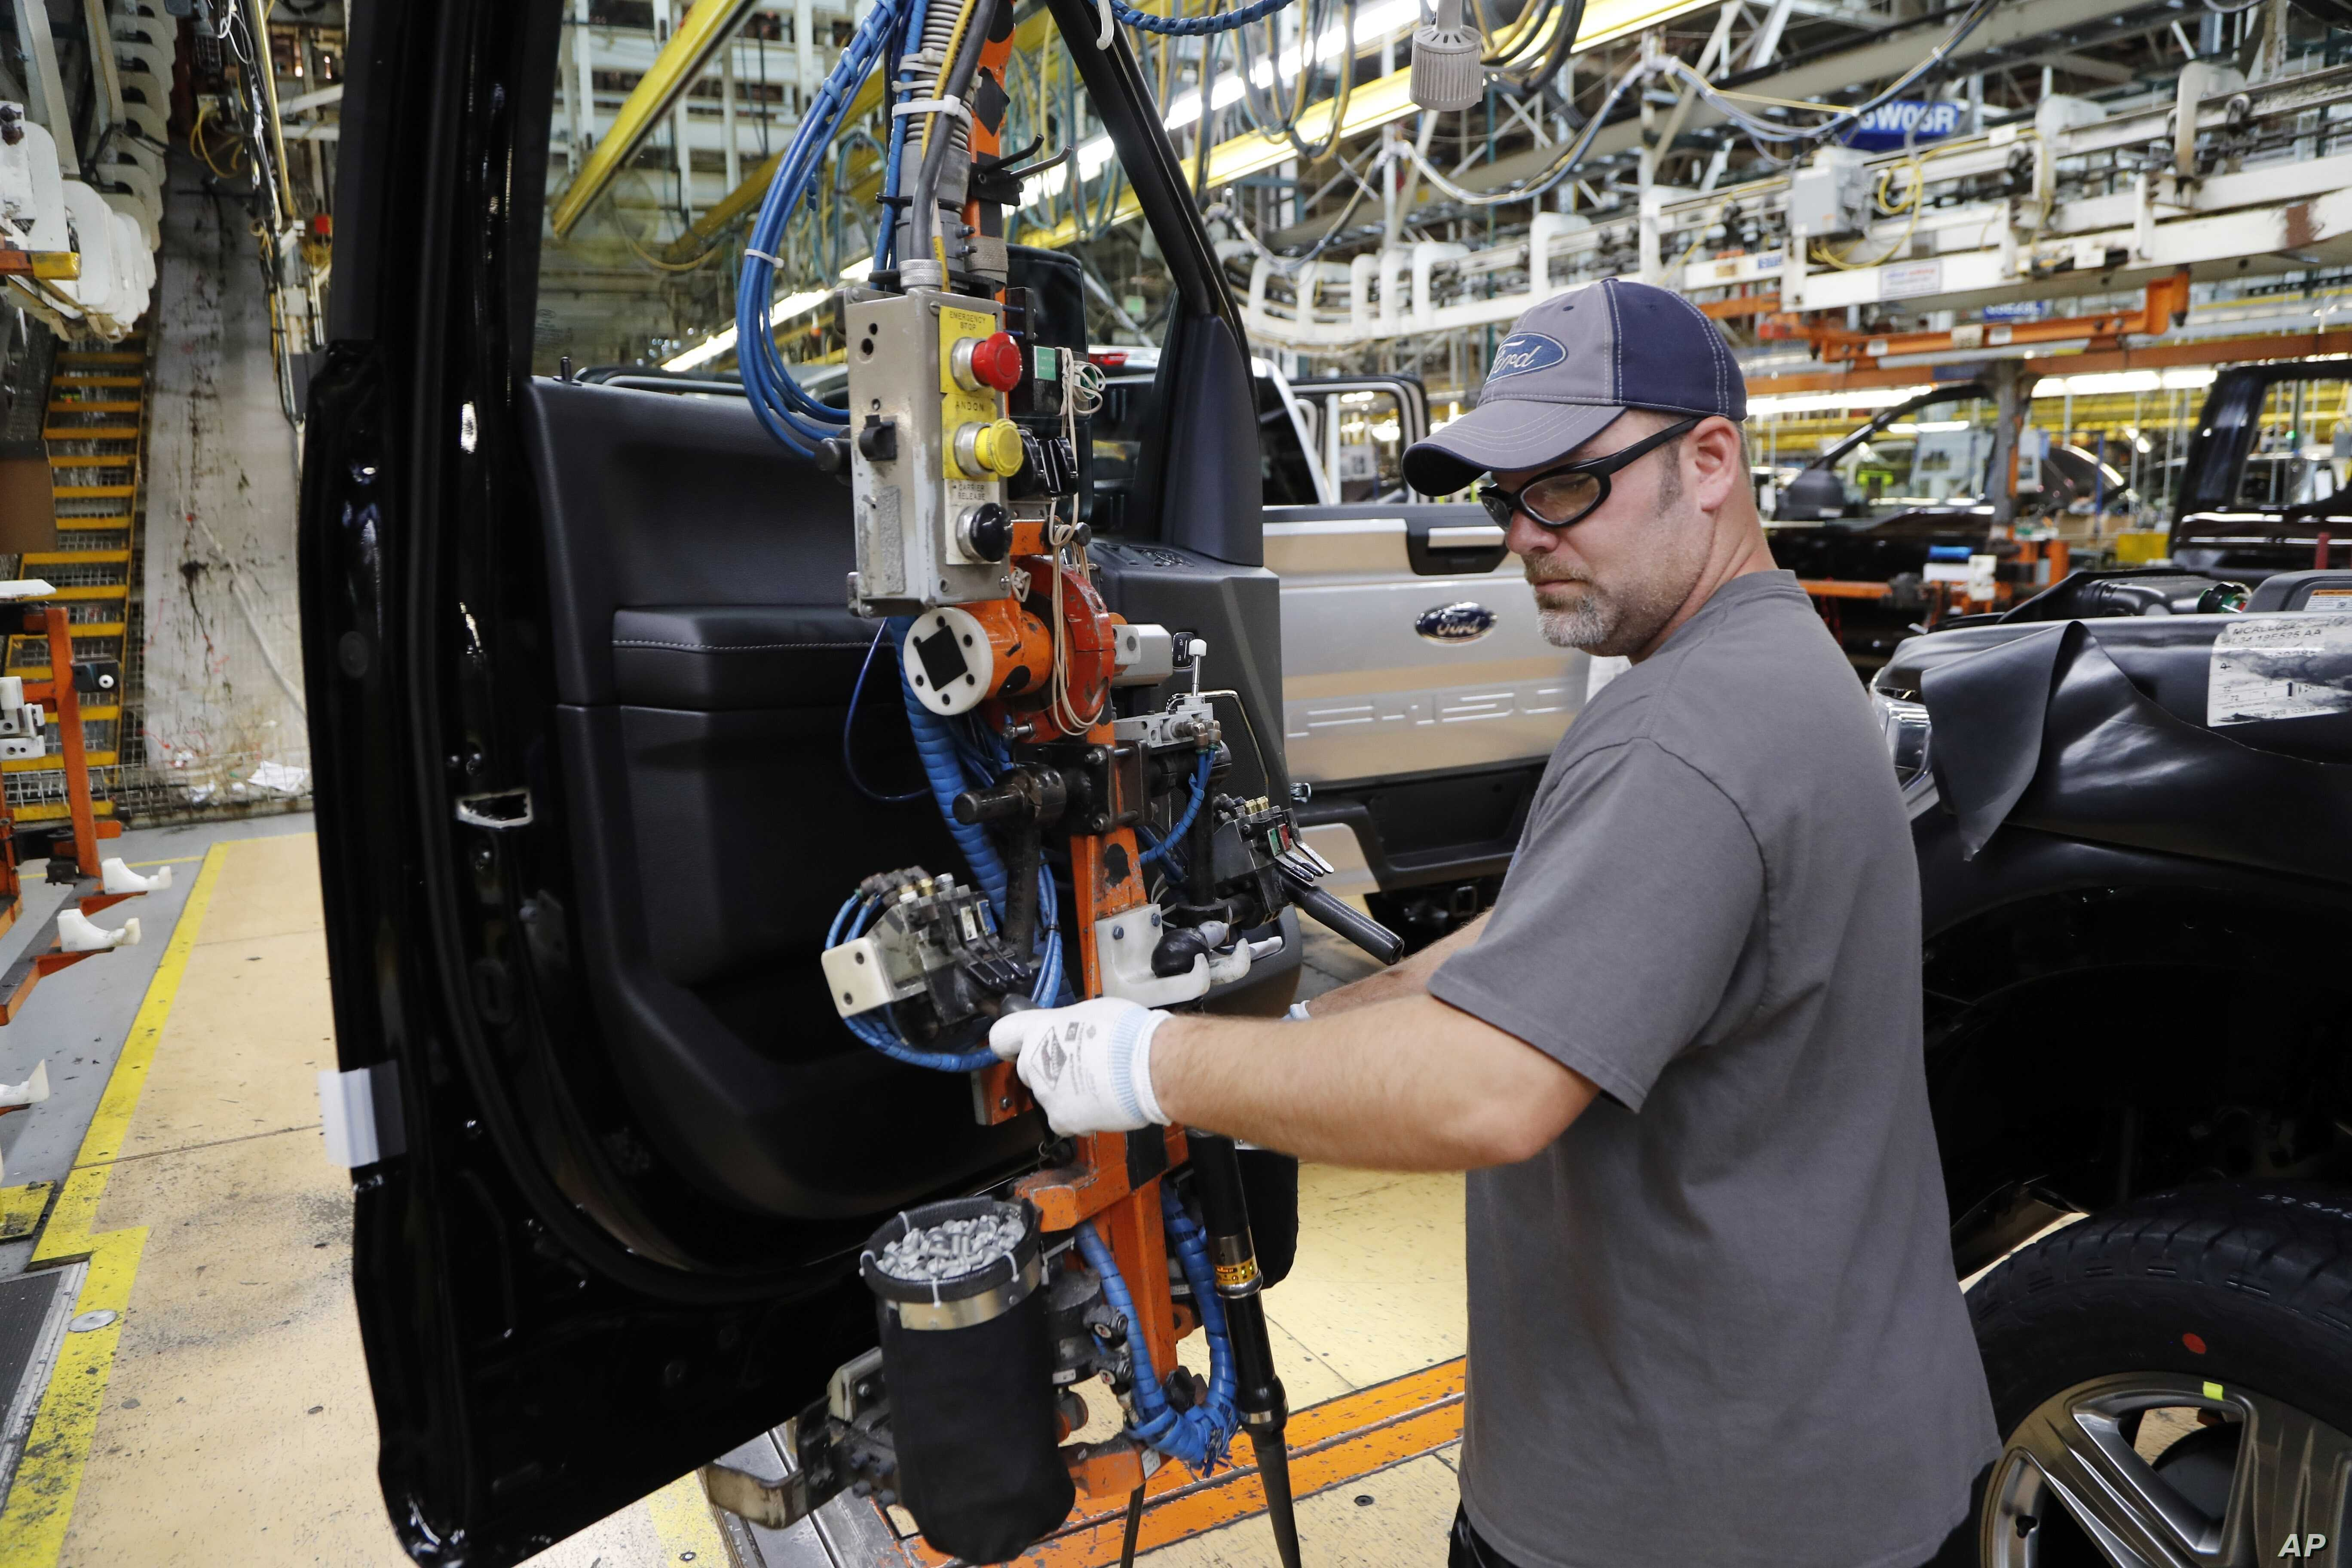 Ford to Cut 12,000 Jobs in Europe as Part of Restructuring | Voice